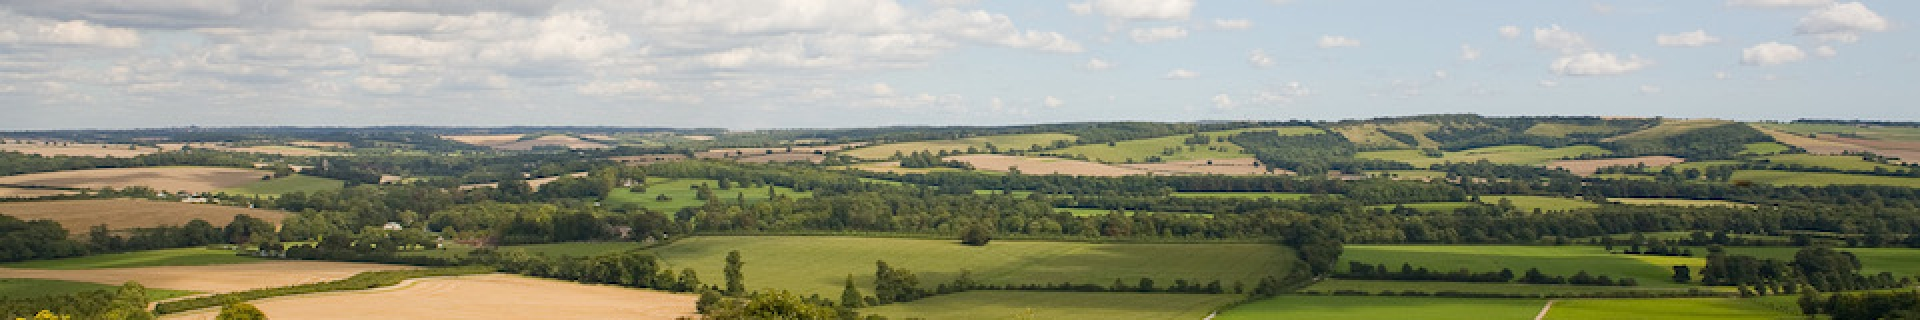 Banner image for Meon Valley